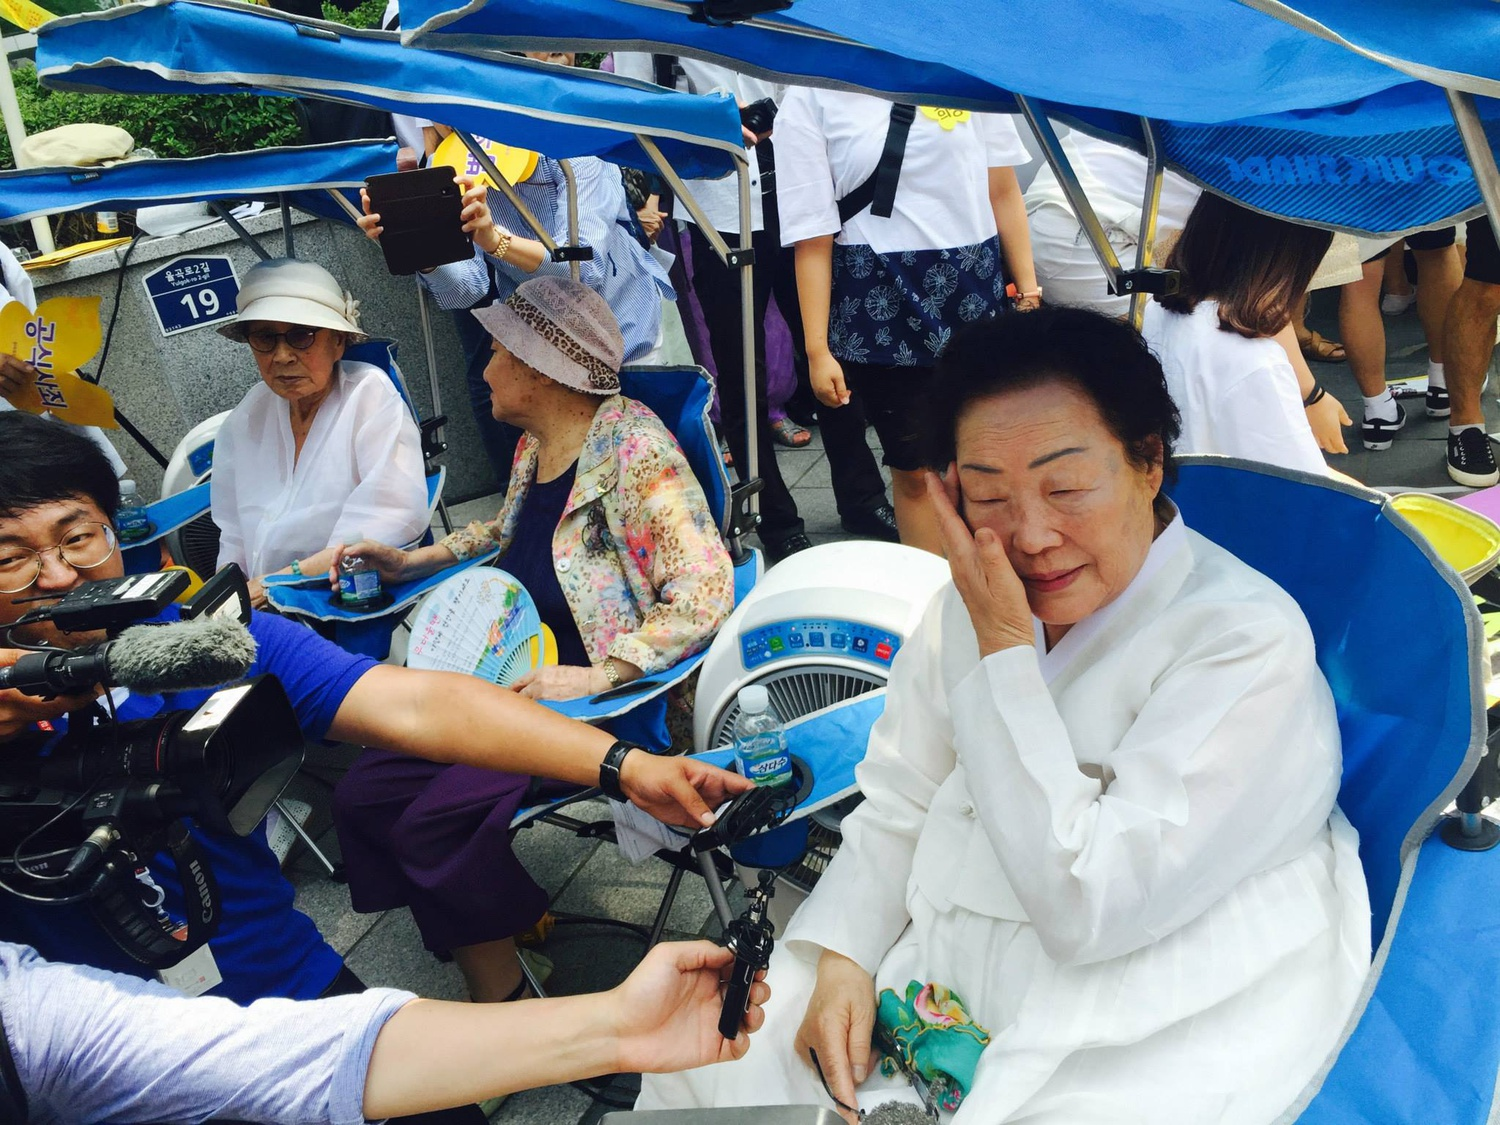 Lee Yong-soo, a former comfort woman and activist, seen at a protest in Seoul. Lee will speak at a webinar organized by the Harvard Asian Pacific American Law Students Association on Tuesday.